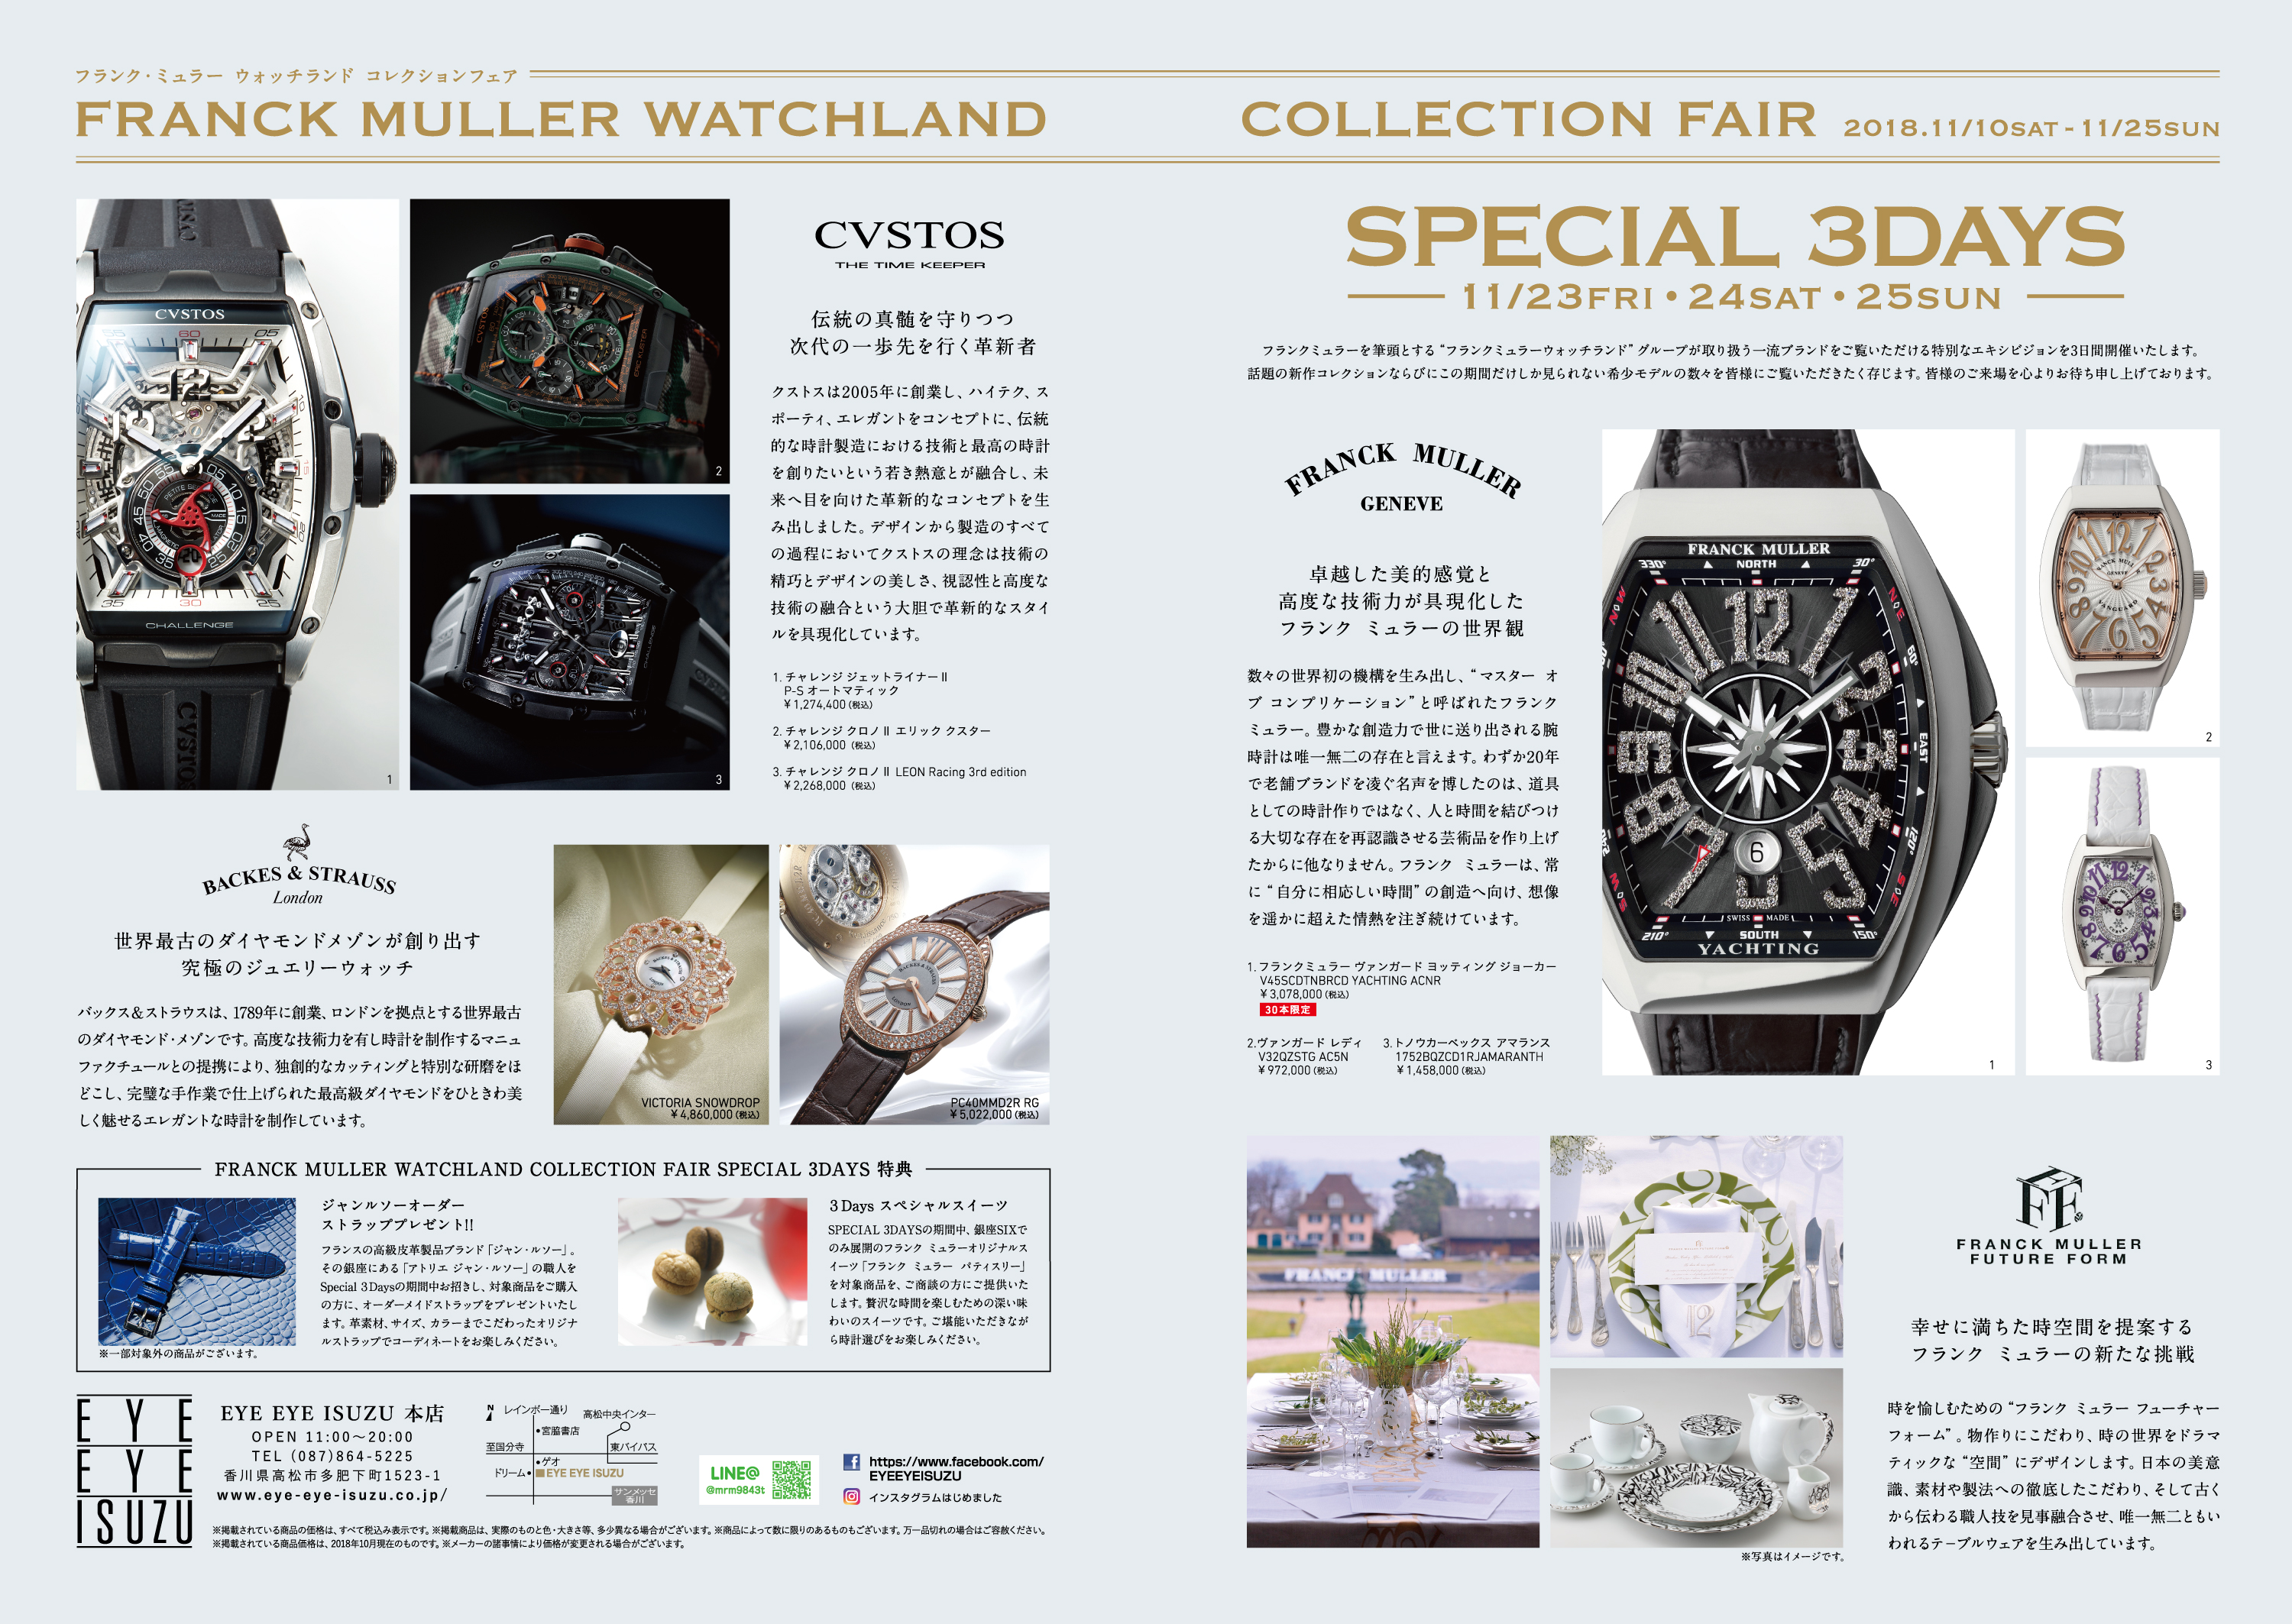 FRANCK MULLER WATCHLAND COLLECTION FAIR